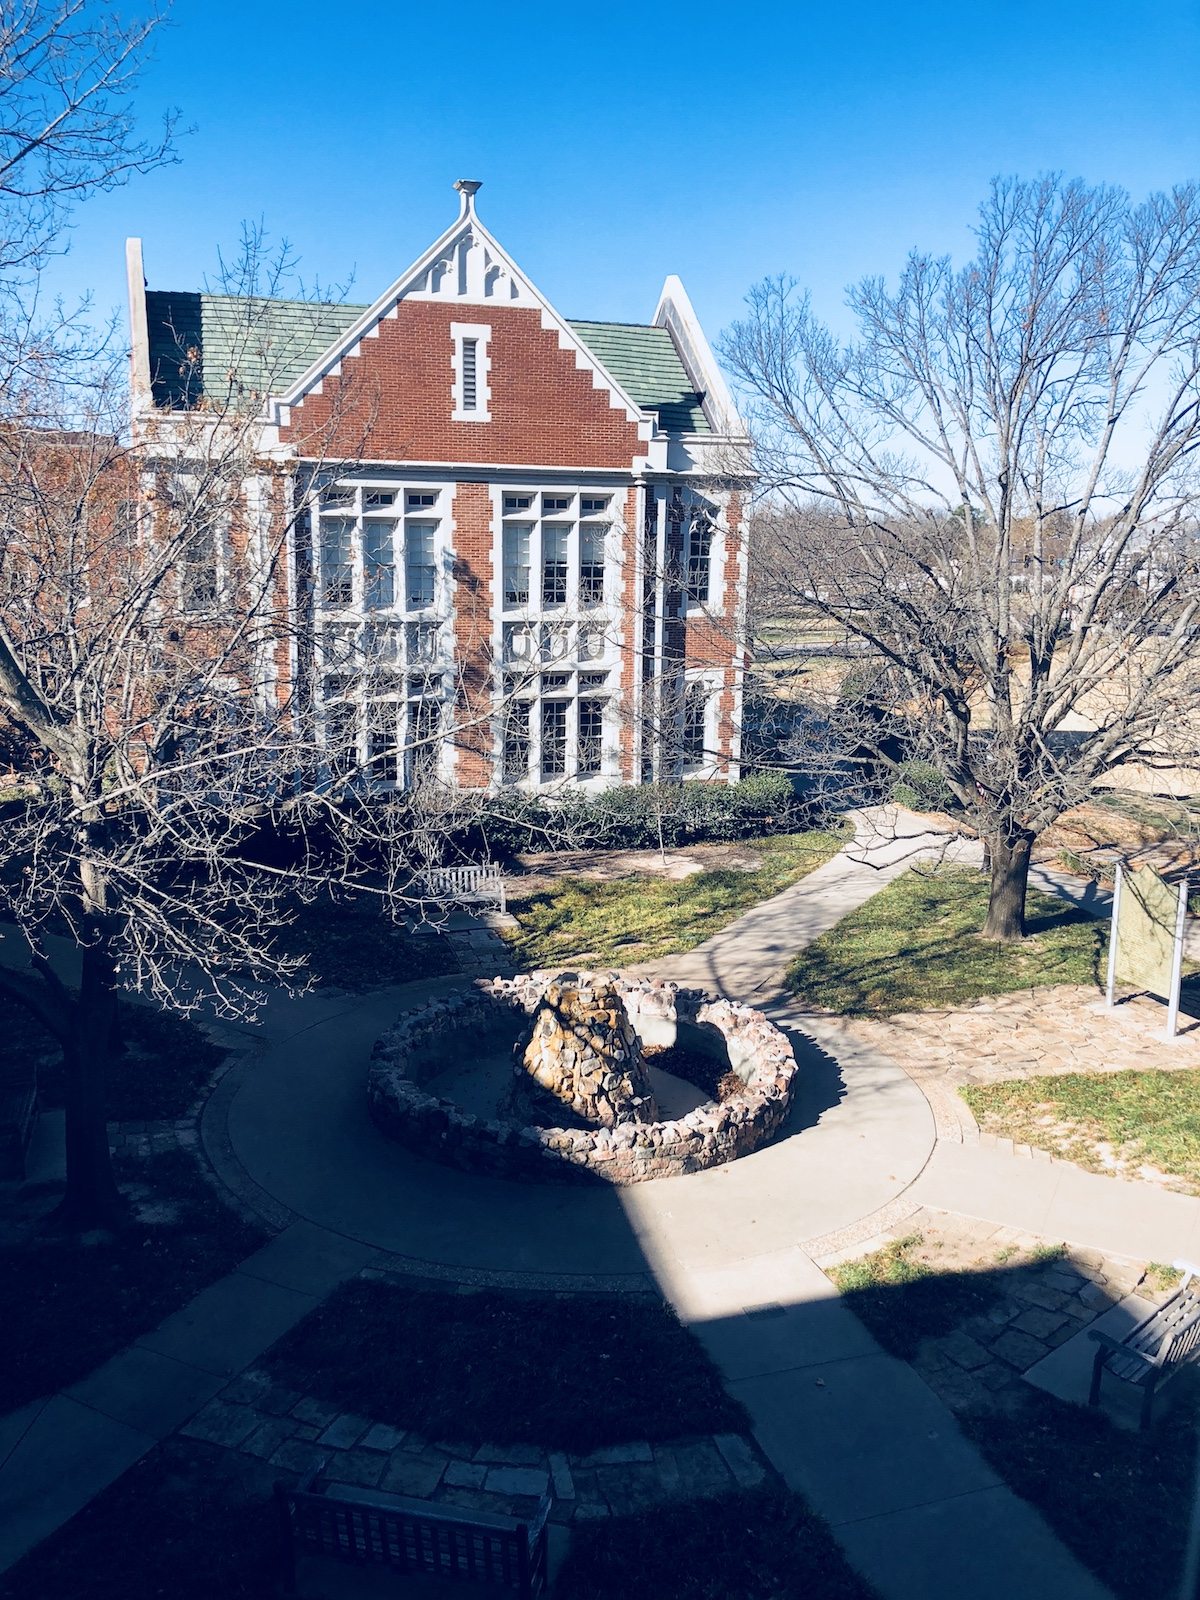 View from the Carpenter Hall, University of Oklahoma School of Music in Norman, Oklahoma.